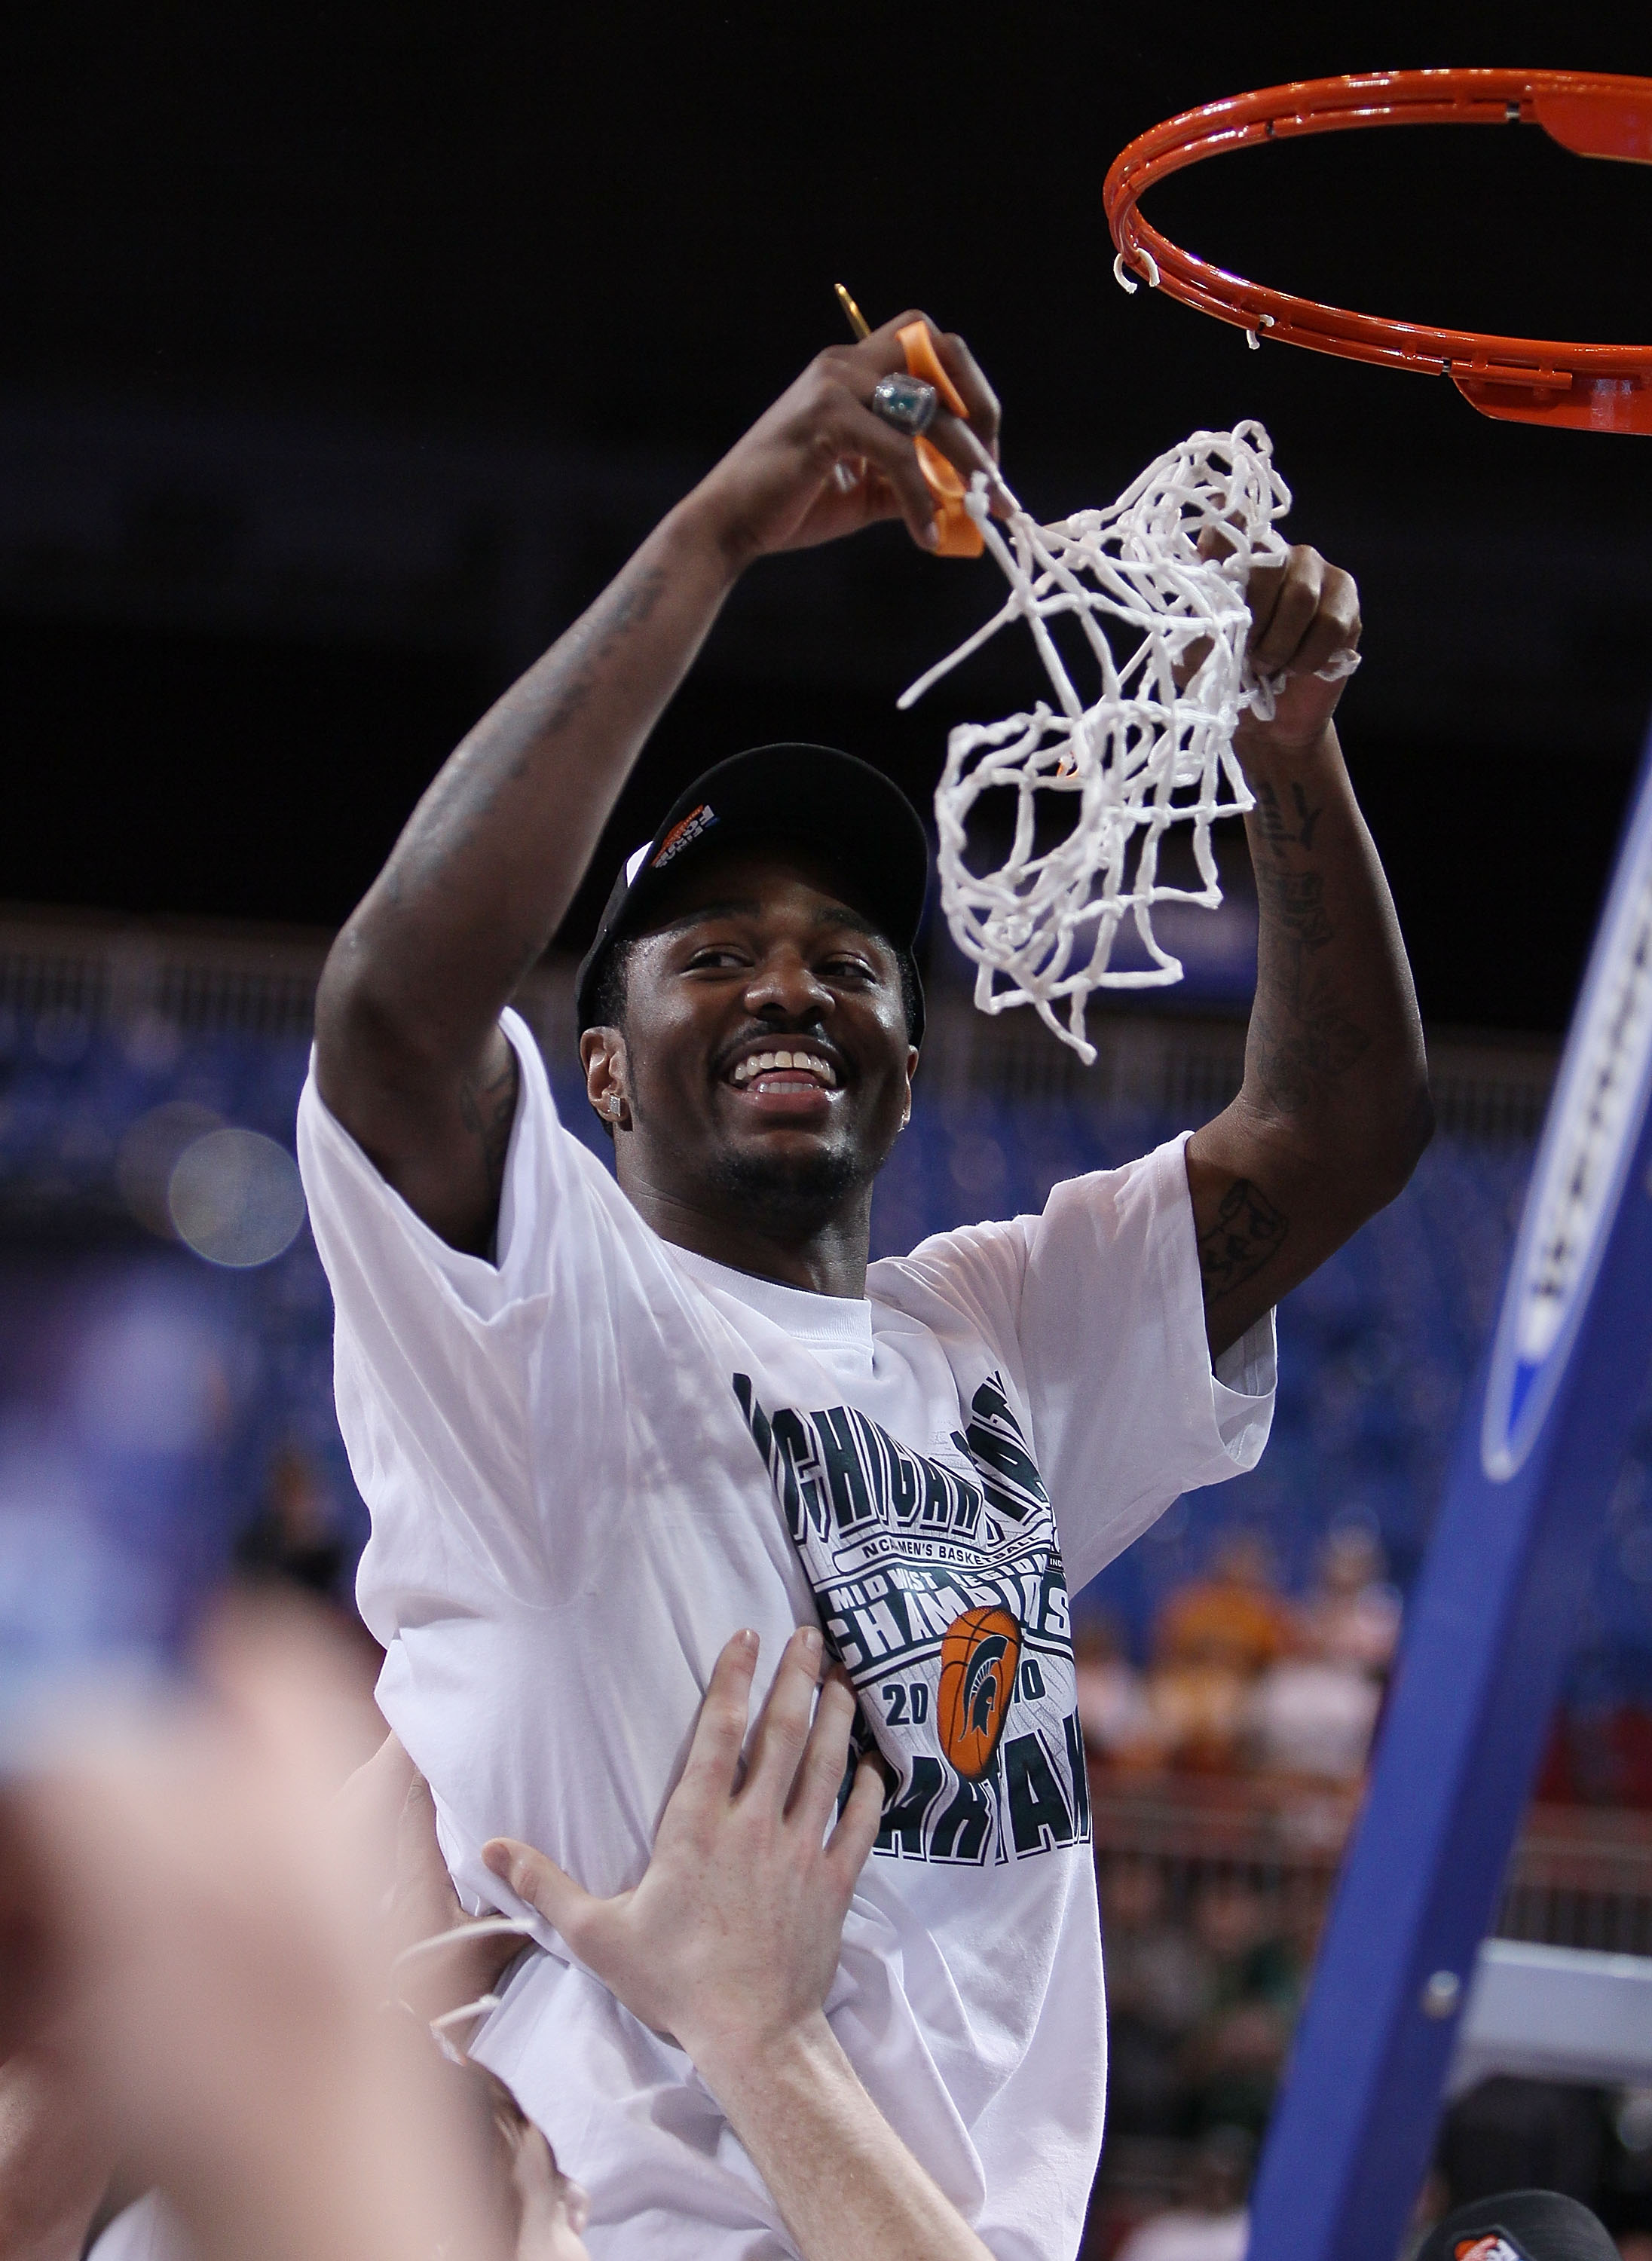 ST. LOUIS - MARCH 28:  :  :  Kalin Lucas #1 of the Michigan State Spartans is lifted by his teammates to cut the net during the midwest regional final of the 2010 NCAA men's basketball tournament at the Edward Jones Dome on March 28, 2010 in St. Louis, Mi